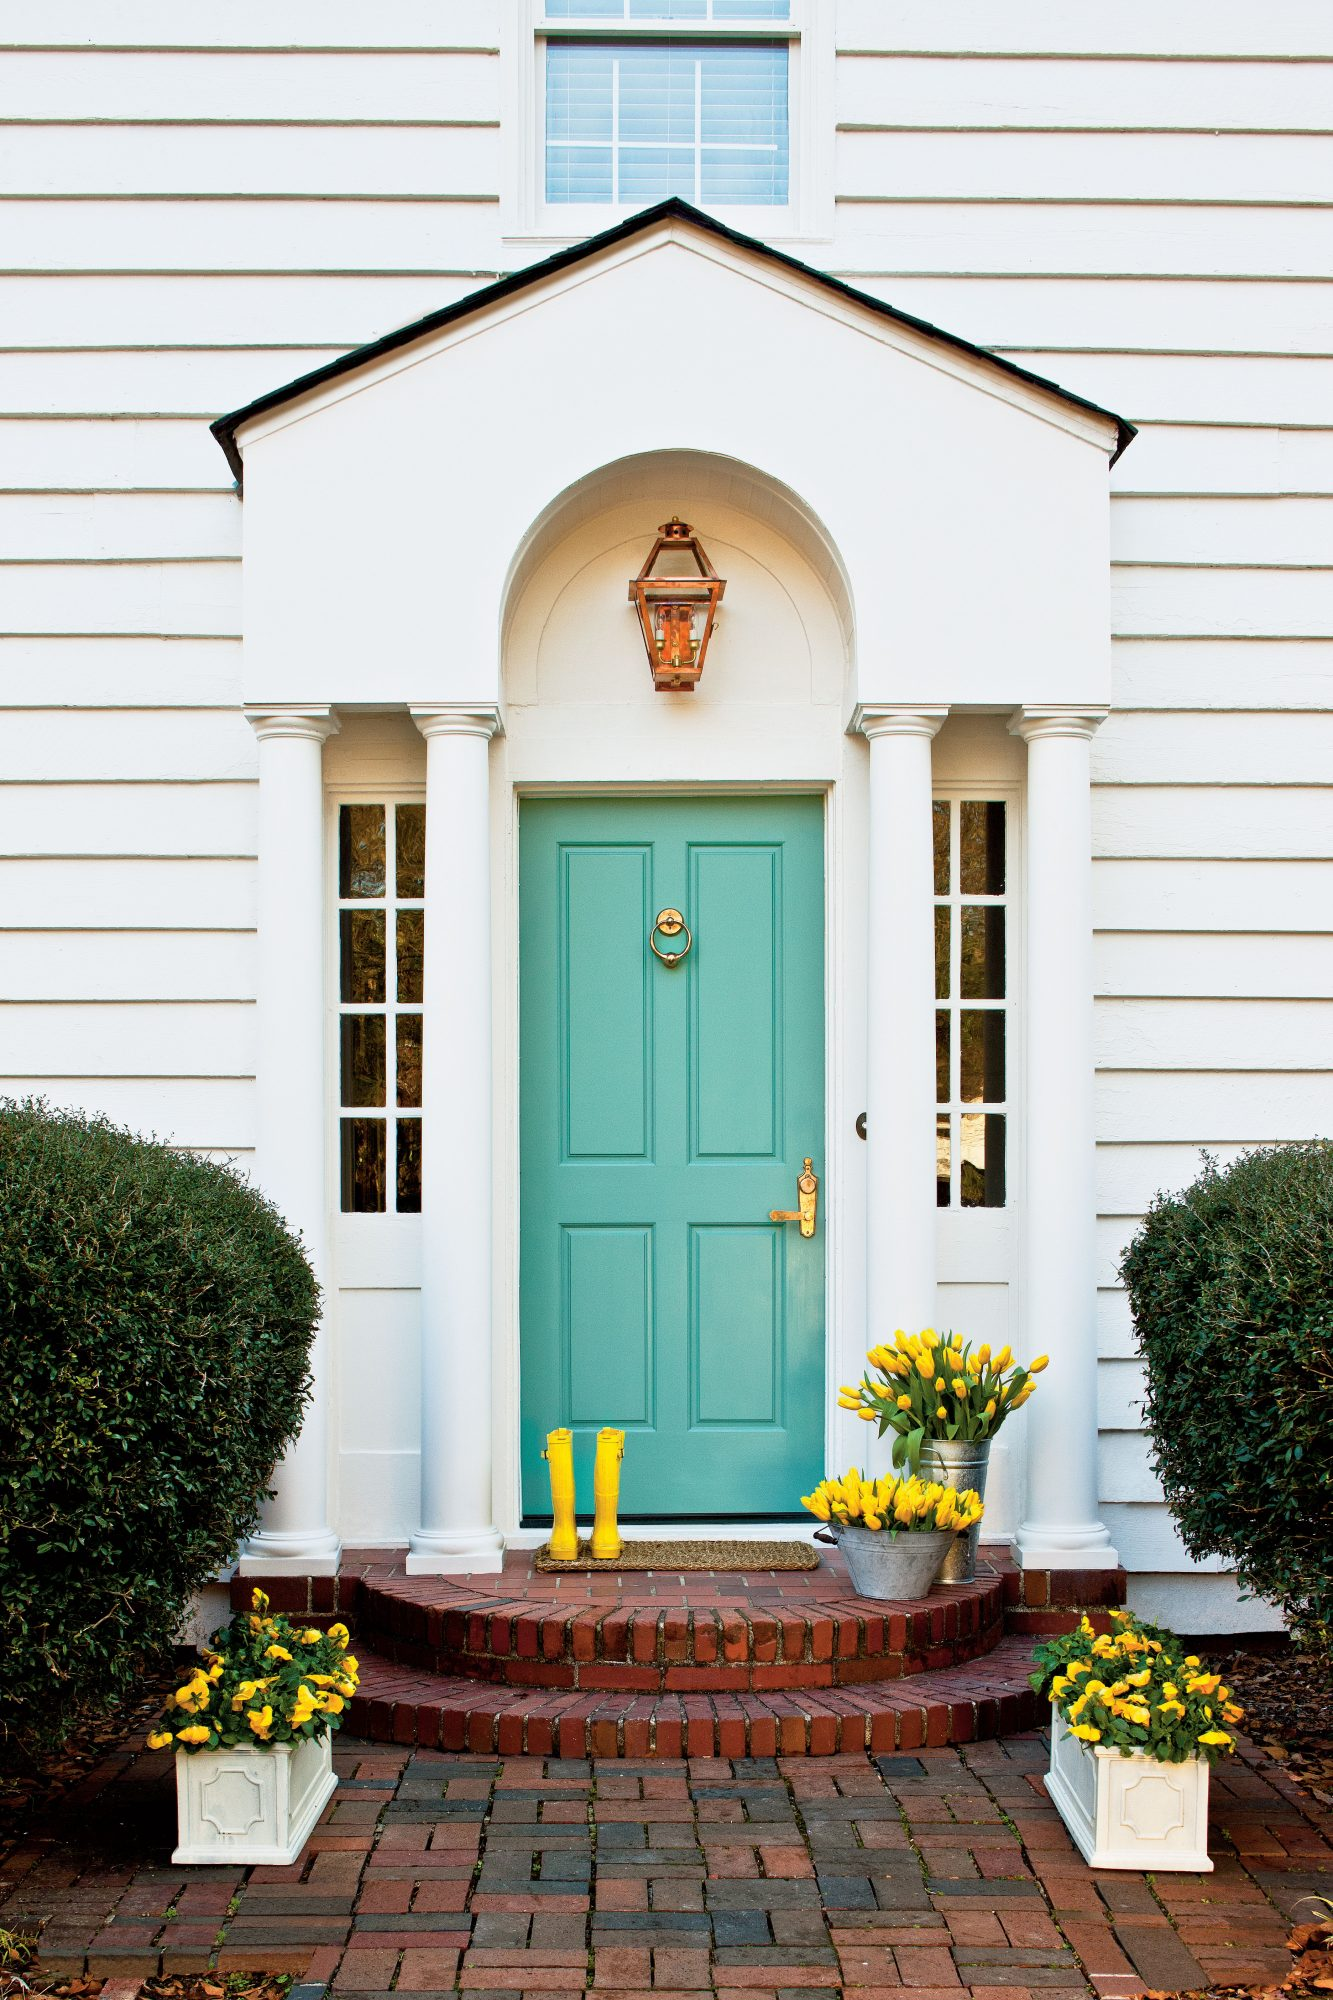 Cool Teal Front Door Yellow Rainboots Awesome - Model Of front door colors for yellow house Model